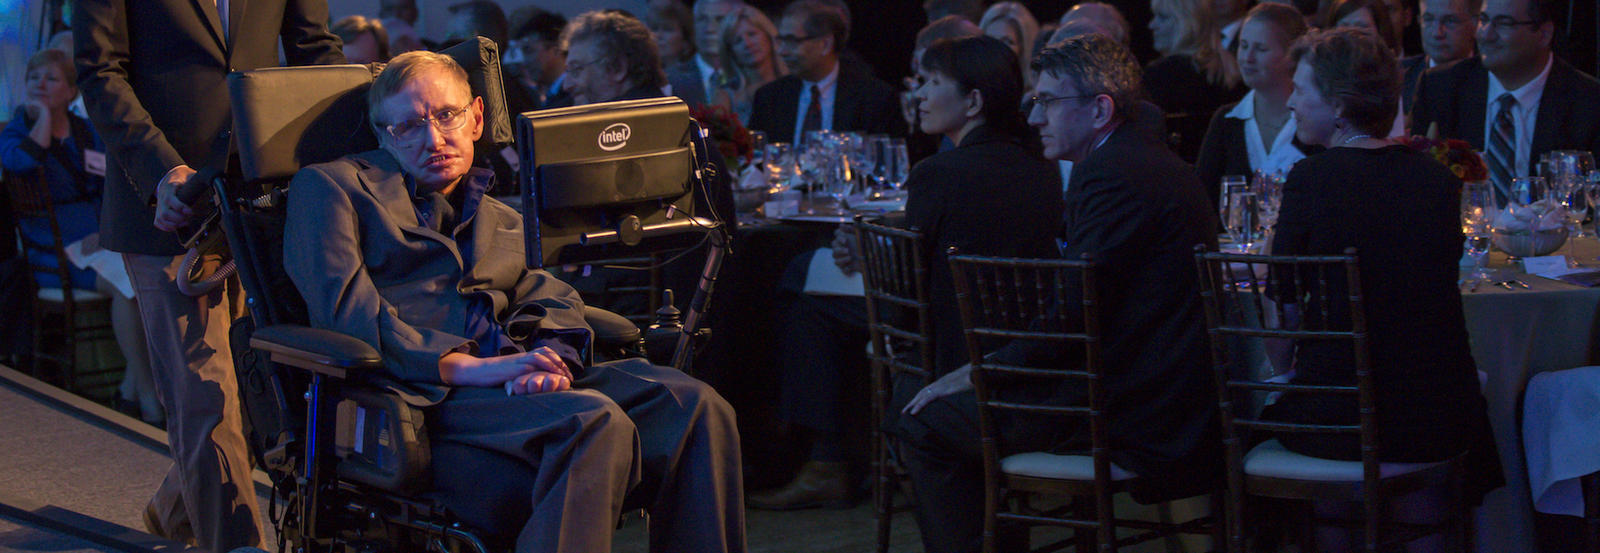 Stephen Hawking during 2012 visit.